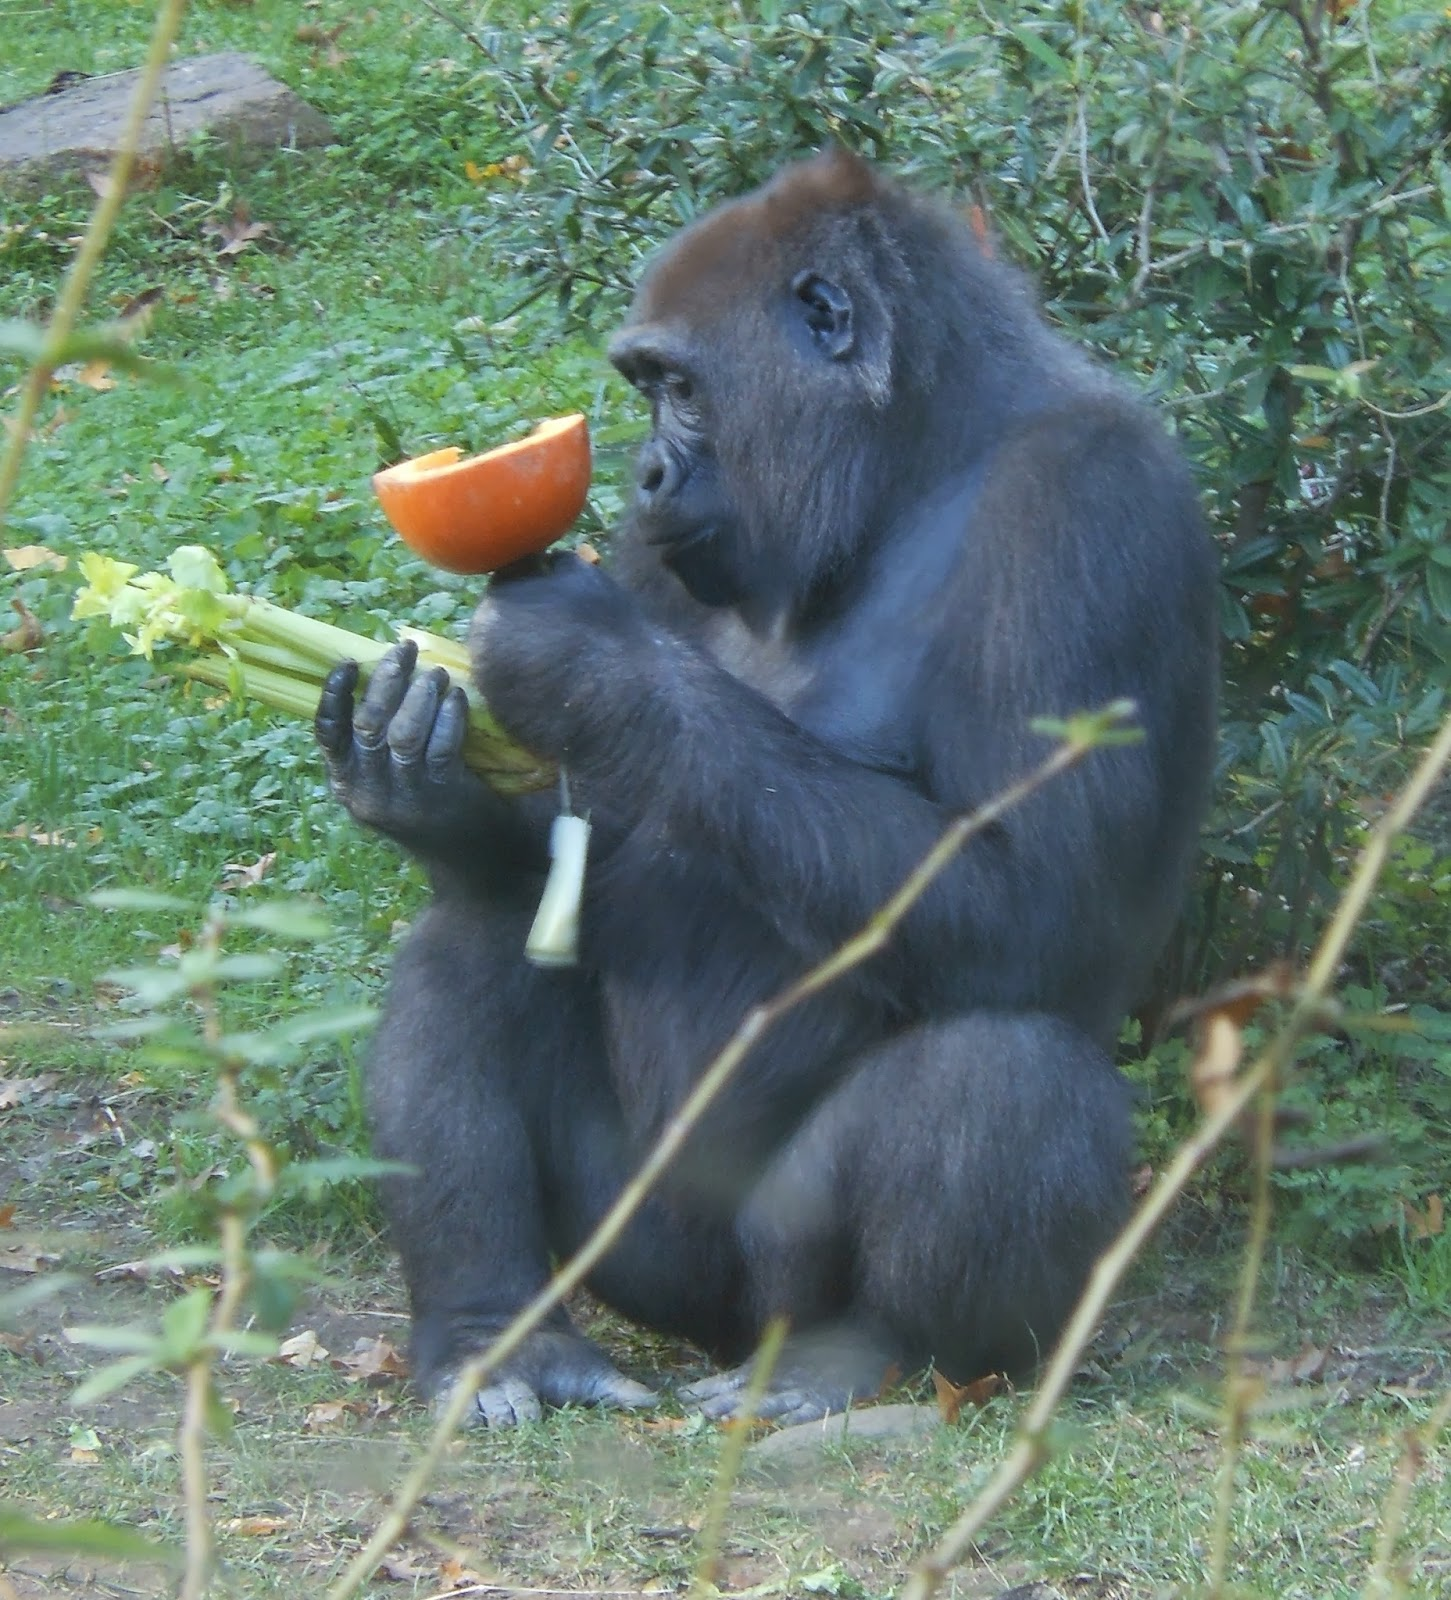 What Do Gorillas Eat – Gorilla Diet